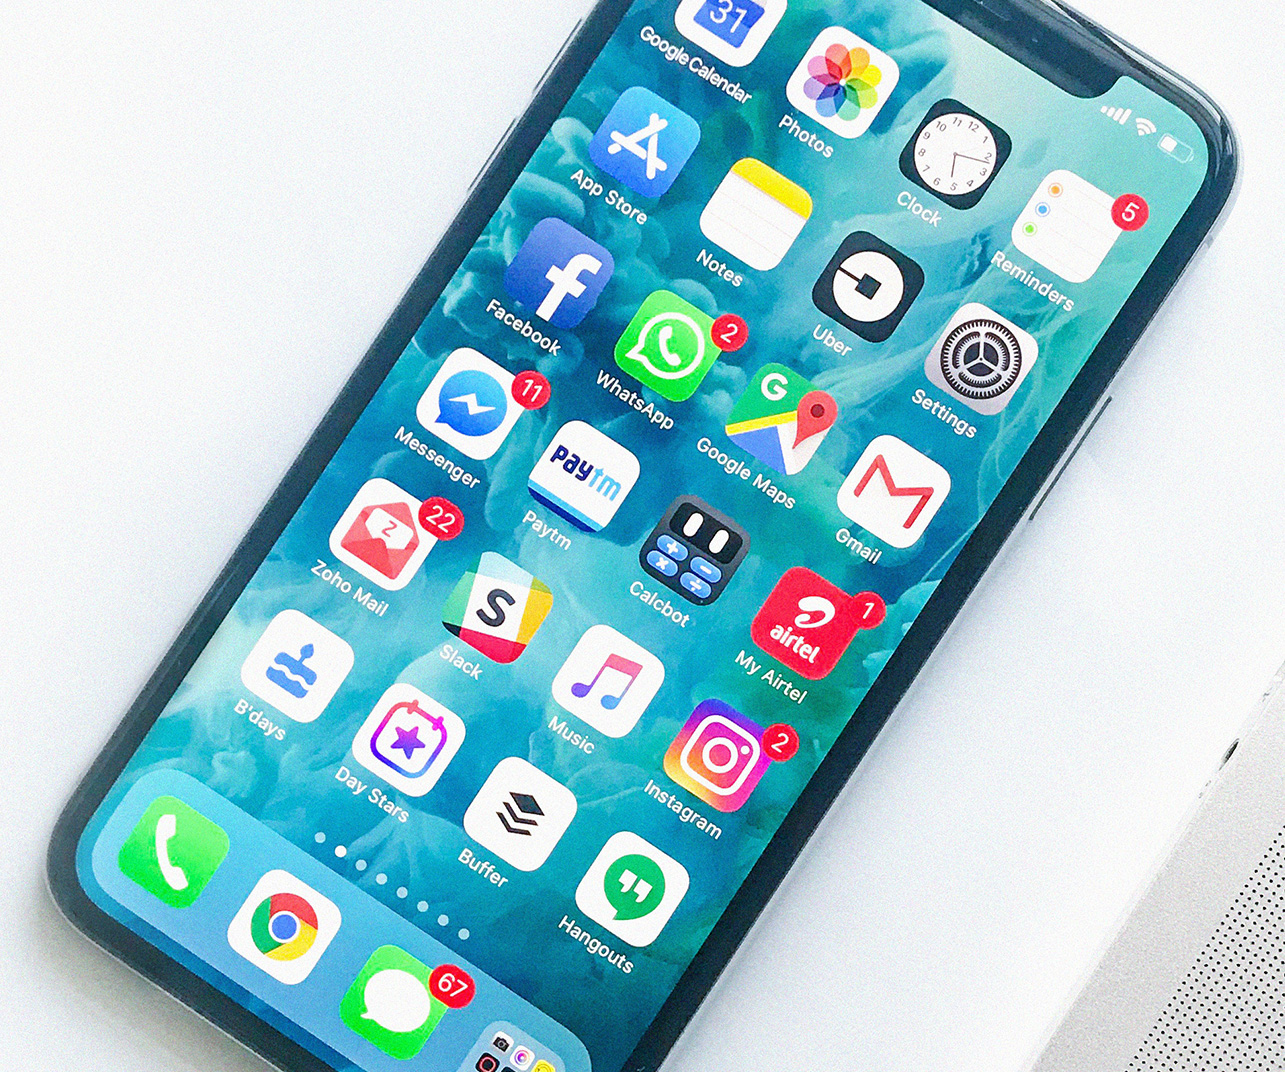 A photo of an iPhone with multiple apps showing on the home screen